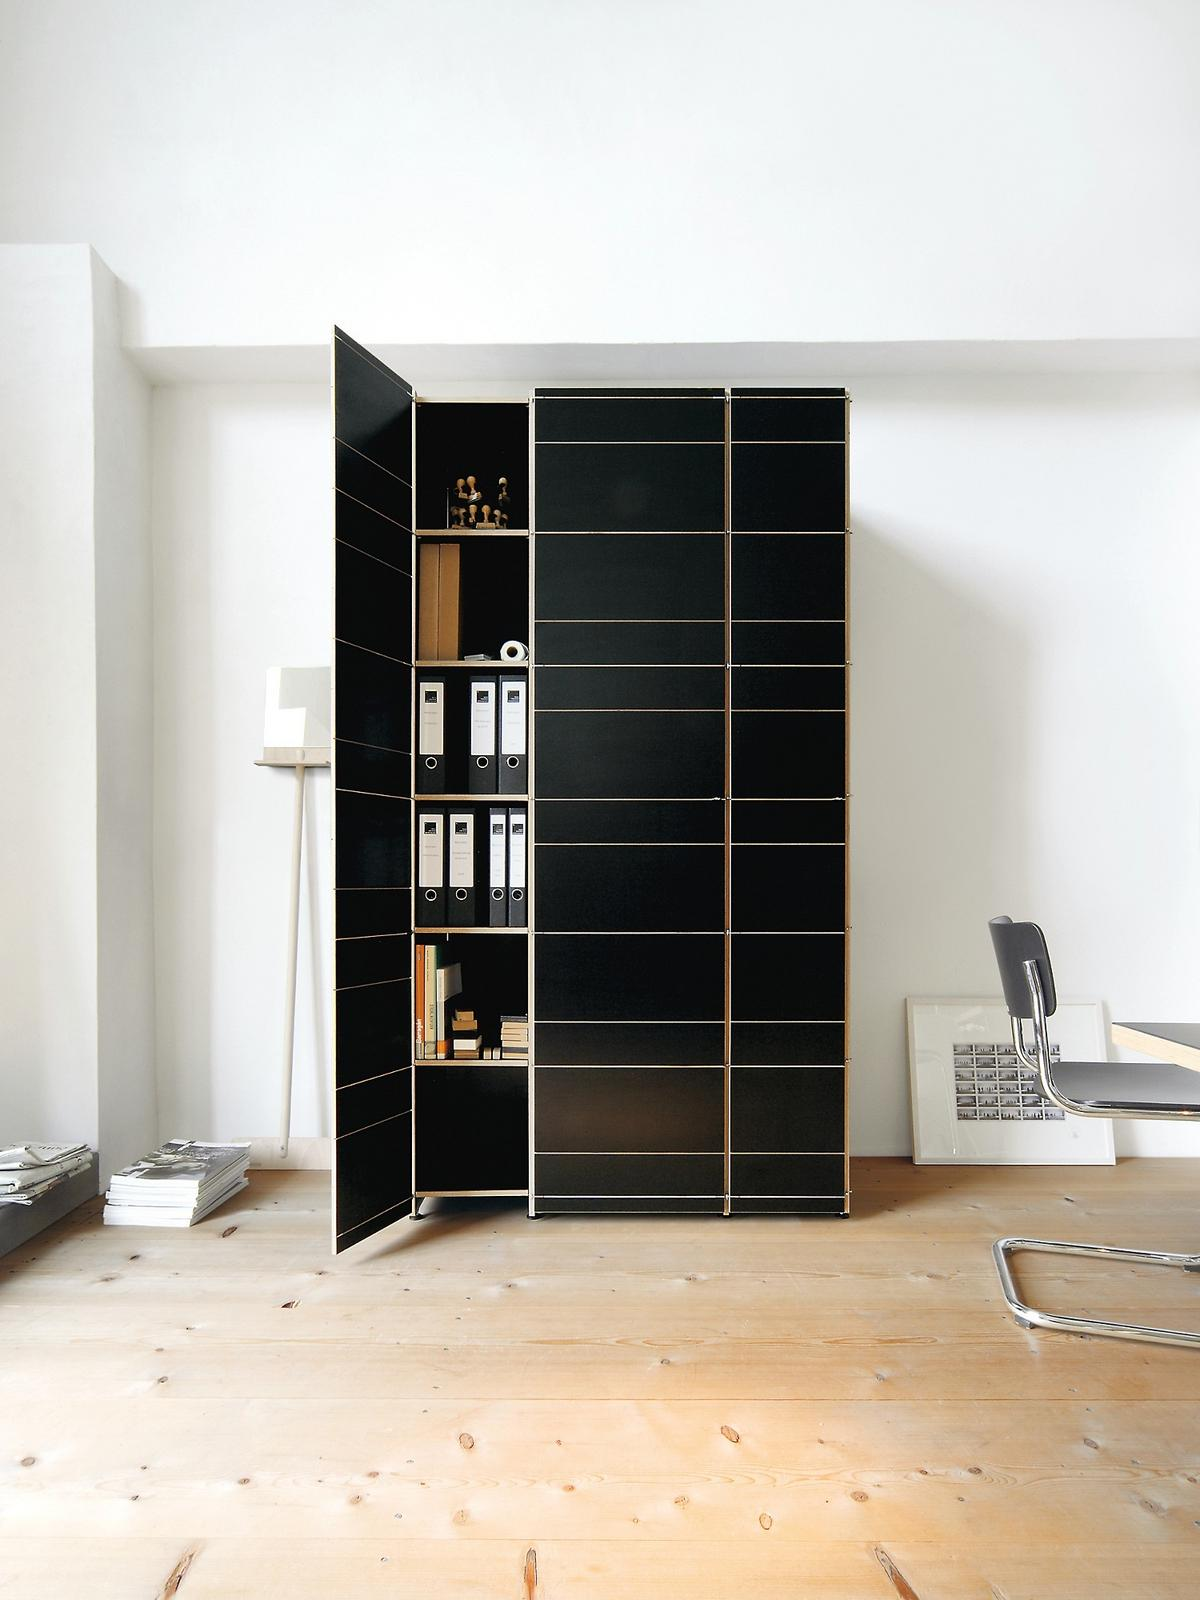 moormann regal konfigurator moormann design von. Black Bedroom Furniture Sets. Home Design Ideas